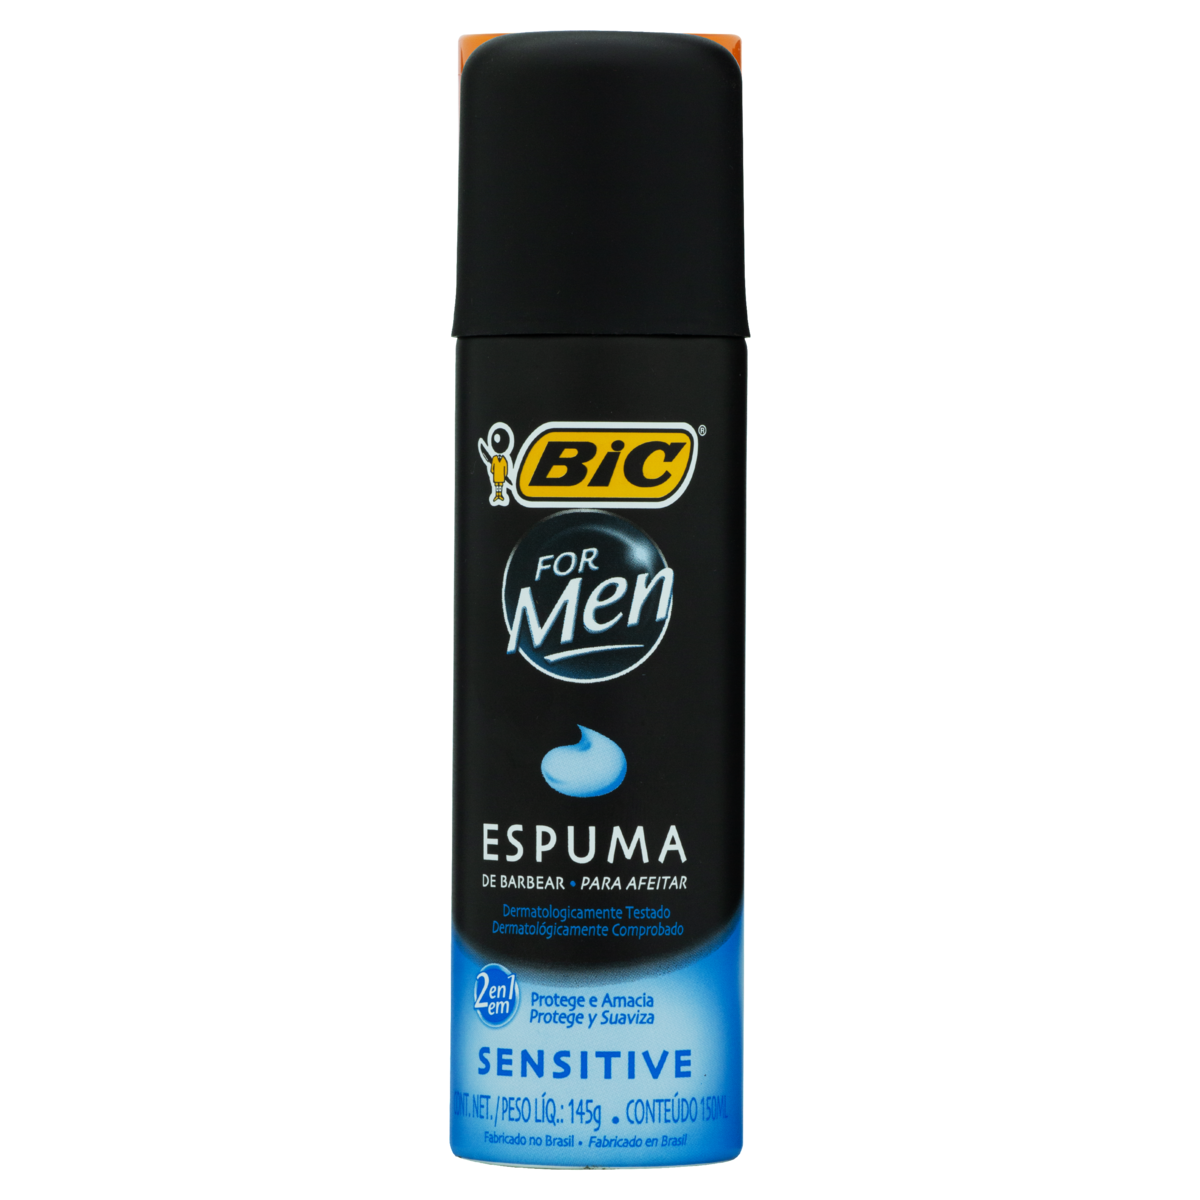 0070330770621 - ESPUMA DE BARBEAR BIC FOR MEN SENSITIVE